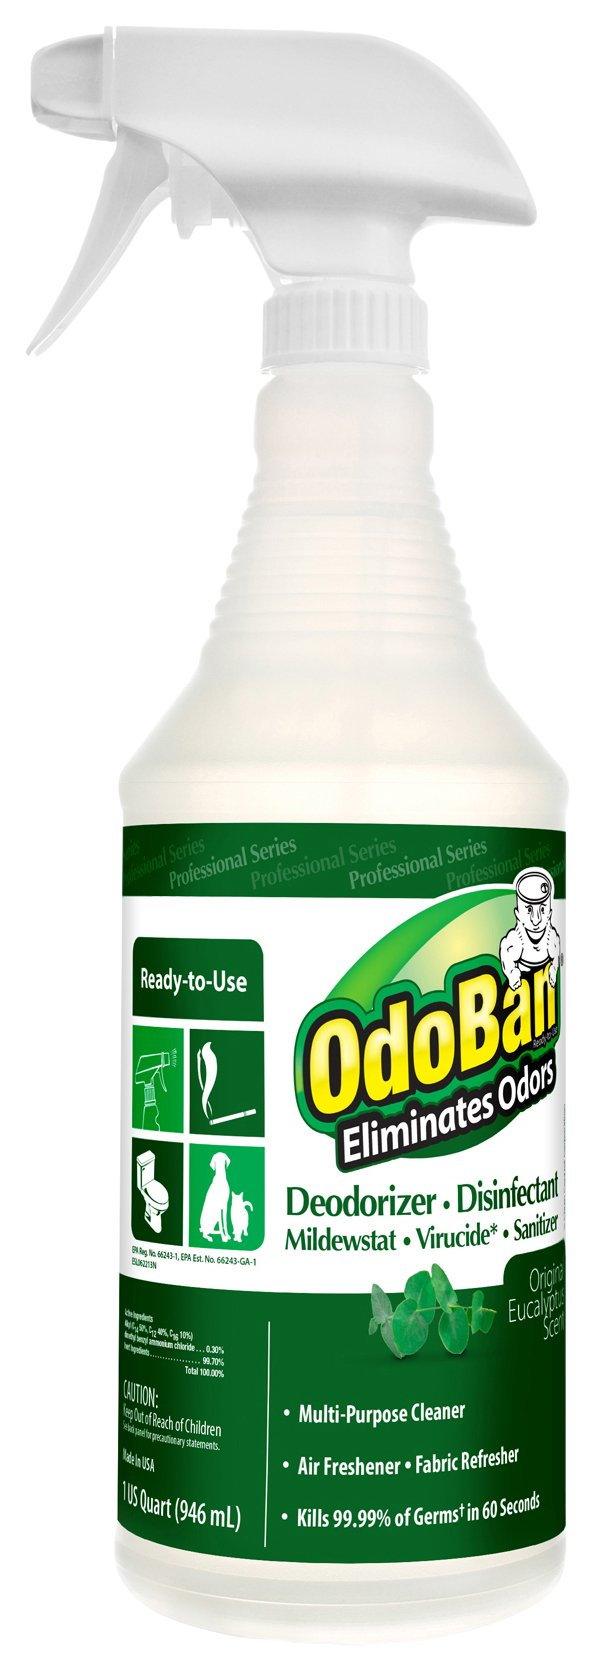 OdoBan 910062-QC12 Ready-to-Use All Purpose Cleaner and Disinfectant Odor Eliminator, Eucalyptus Scent, 32 oz. (Pack of 12) by OdoBan